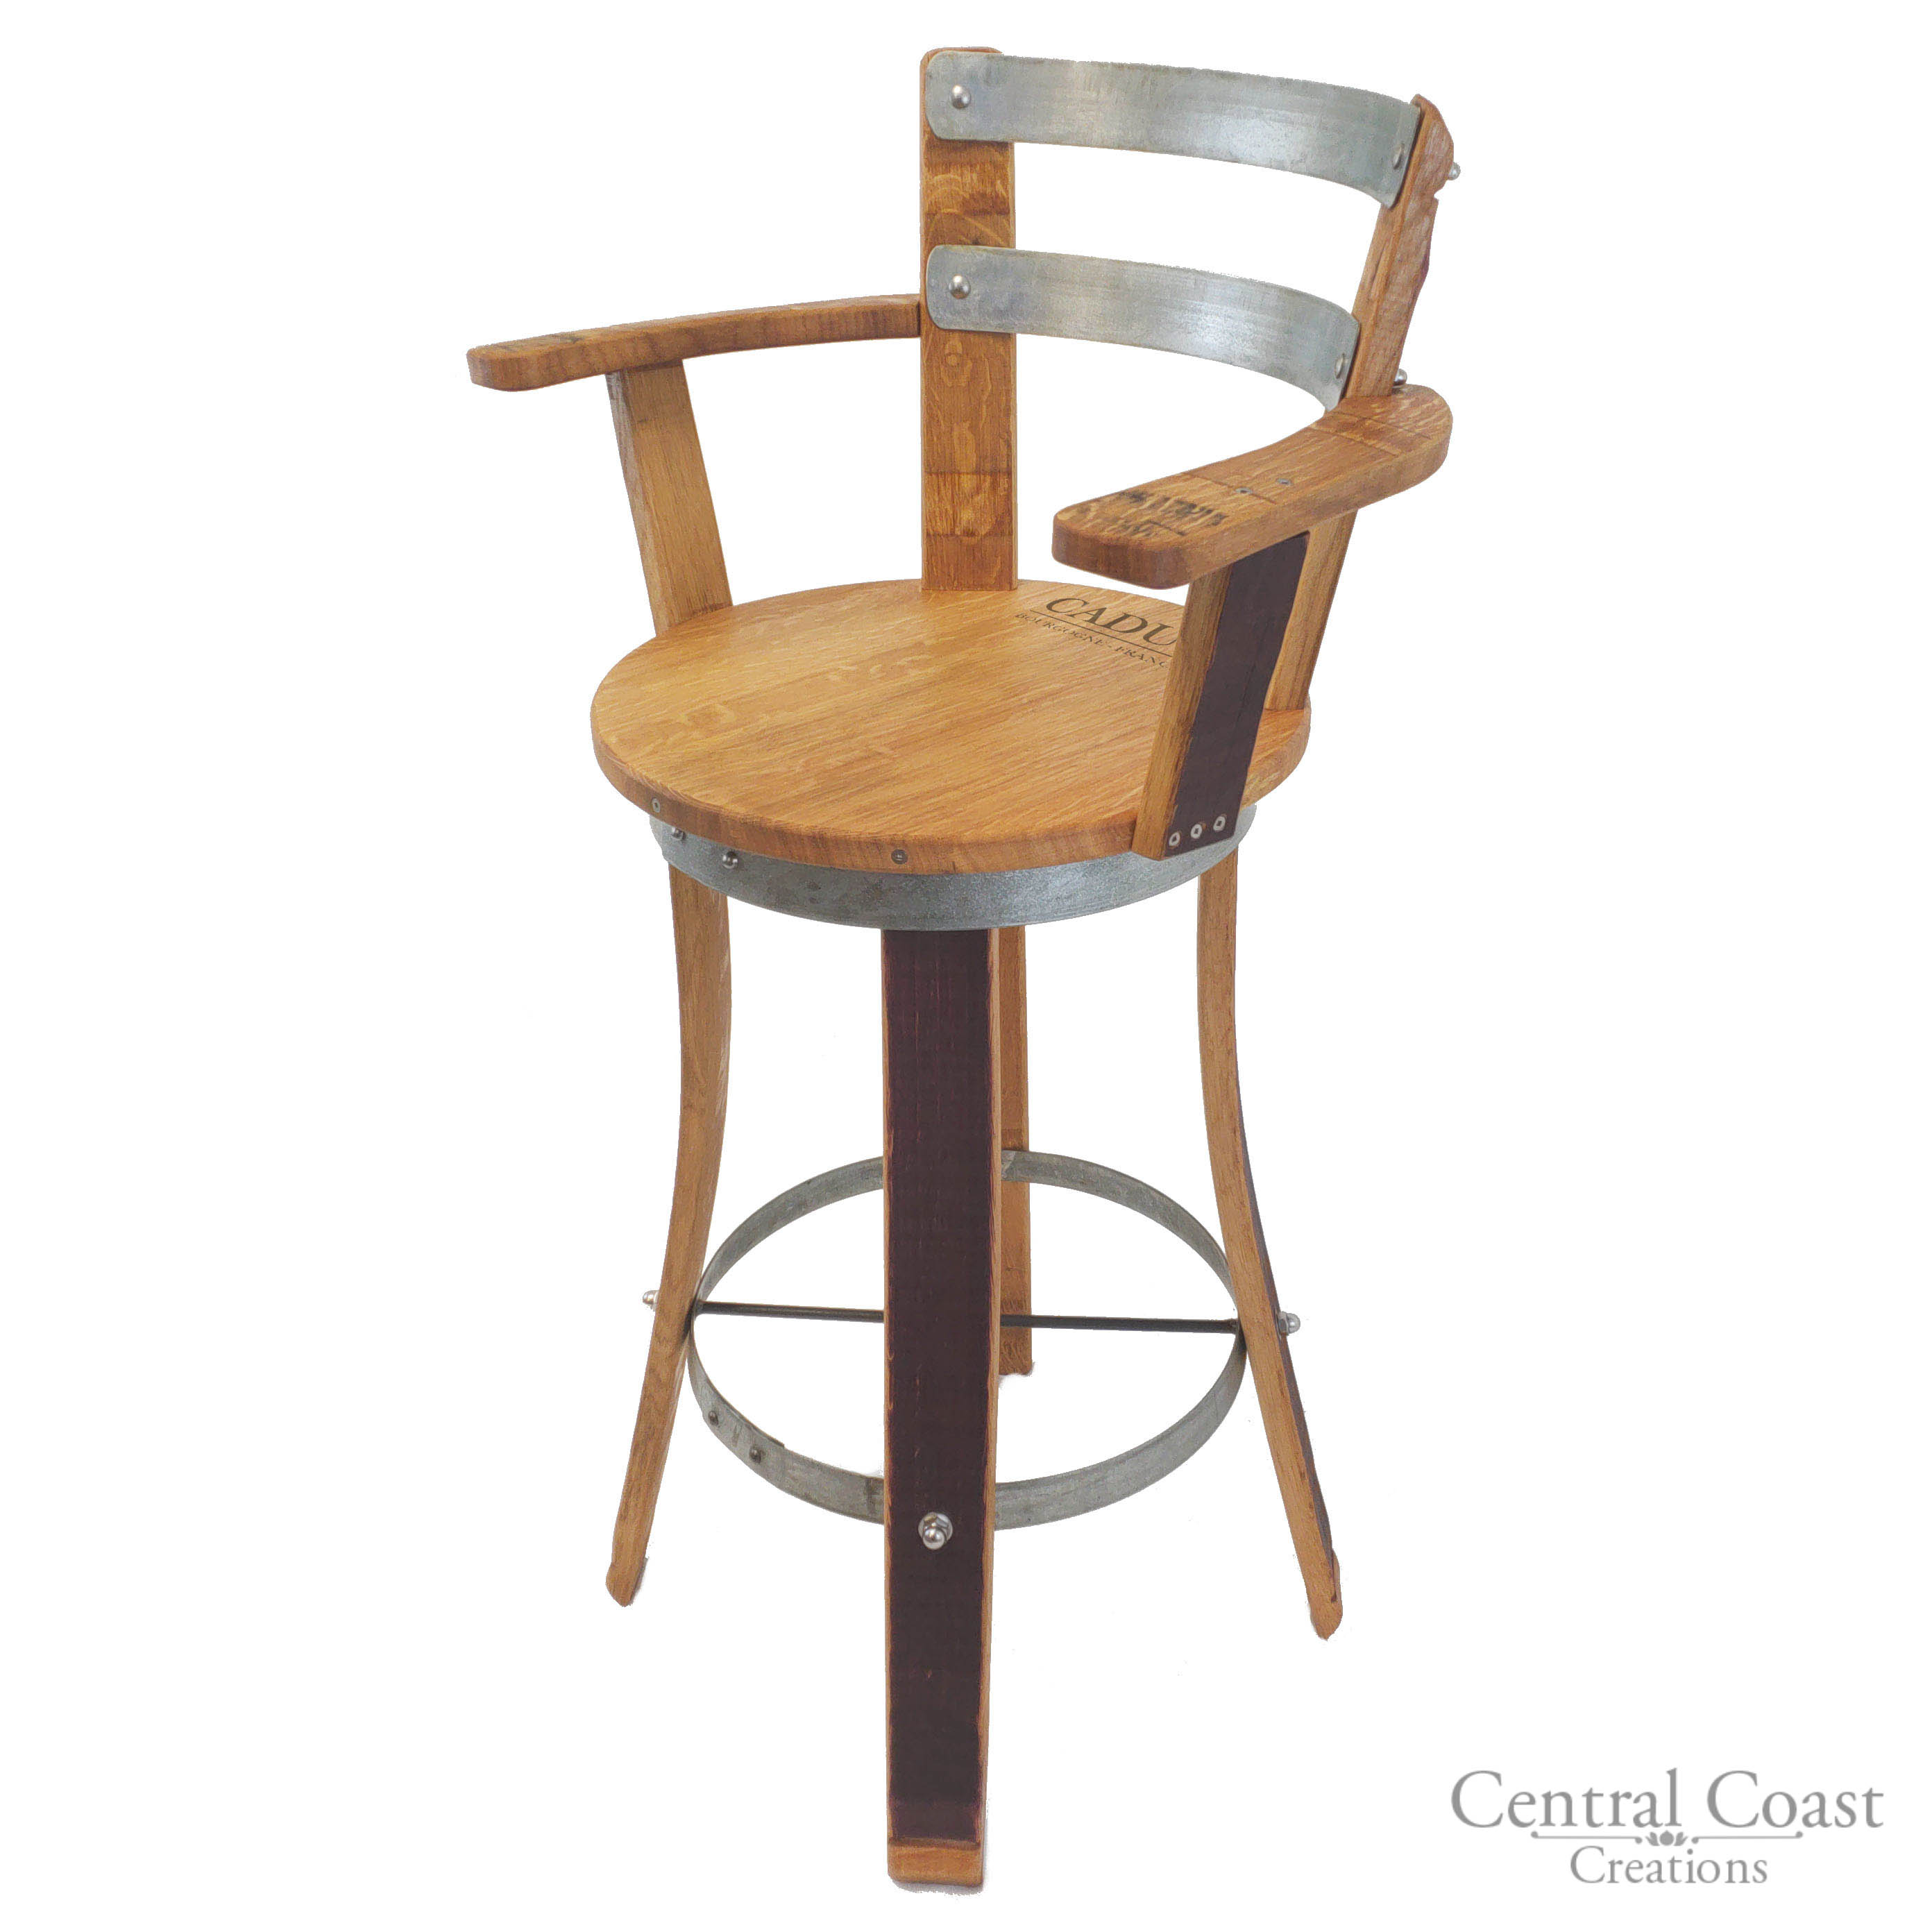 Awesome Details About Swivel Top Wine Barrel Stool W Armrest 24 26 30 Sit Height Rustic Furniture Evergreenethics Interior Chair Design Evergreenethicsorg